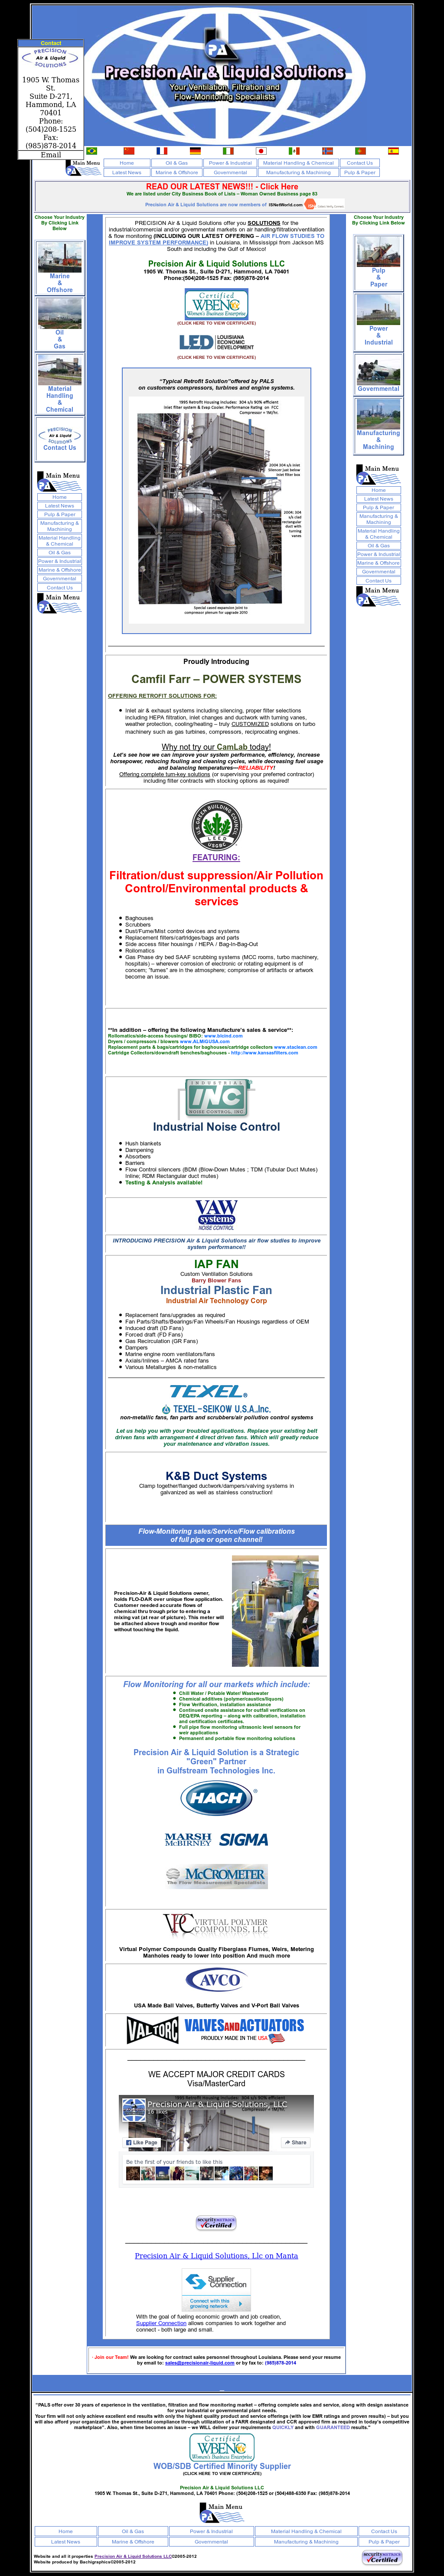 Precision Air & Liquid Solutions Competitors, Revenue and Employees